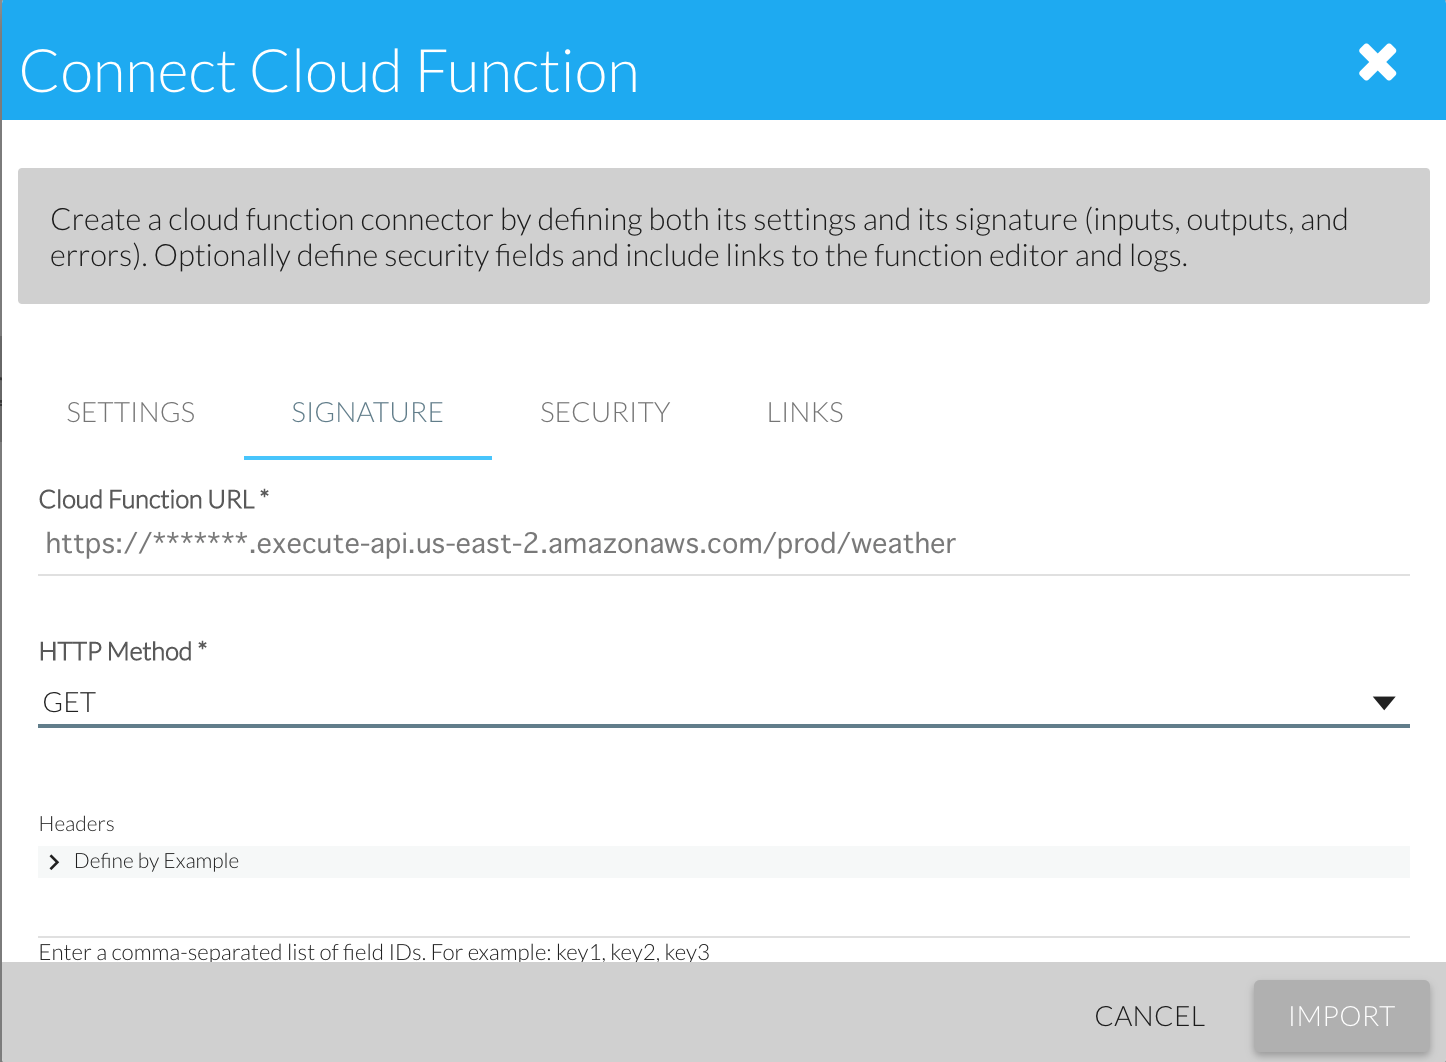 Configuring the function signature